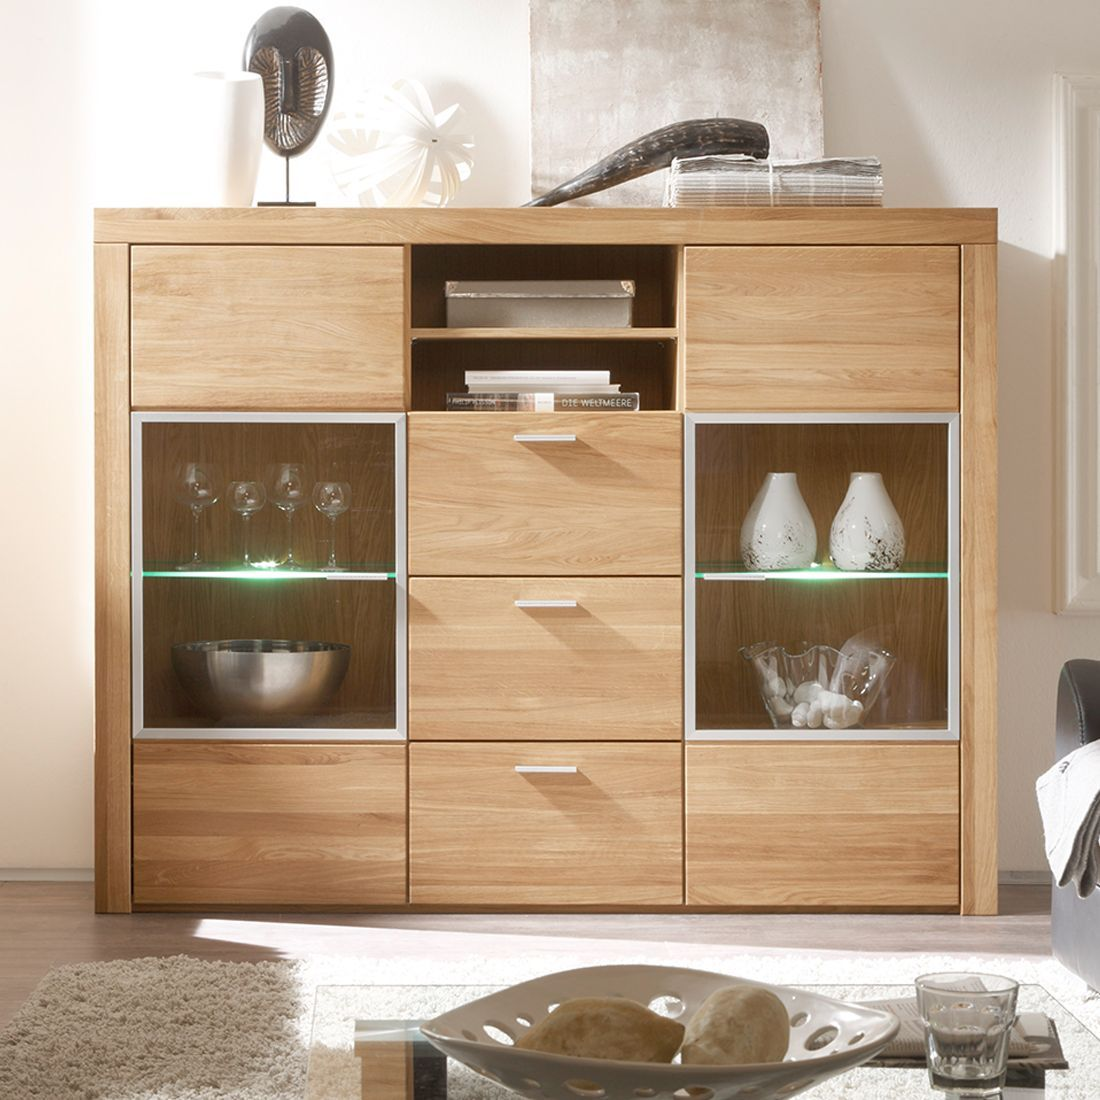 highboard eiche teilmassiv woody 19 00559 holz modern jetzt bestellen unter https moebel. Black Bedroom Furniture Sets. Home Design Ideas